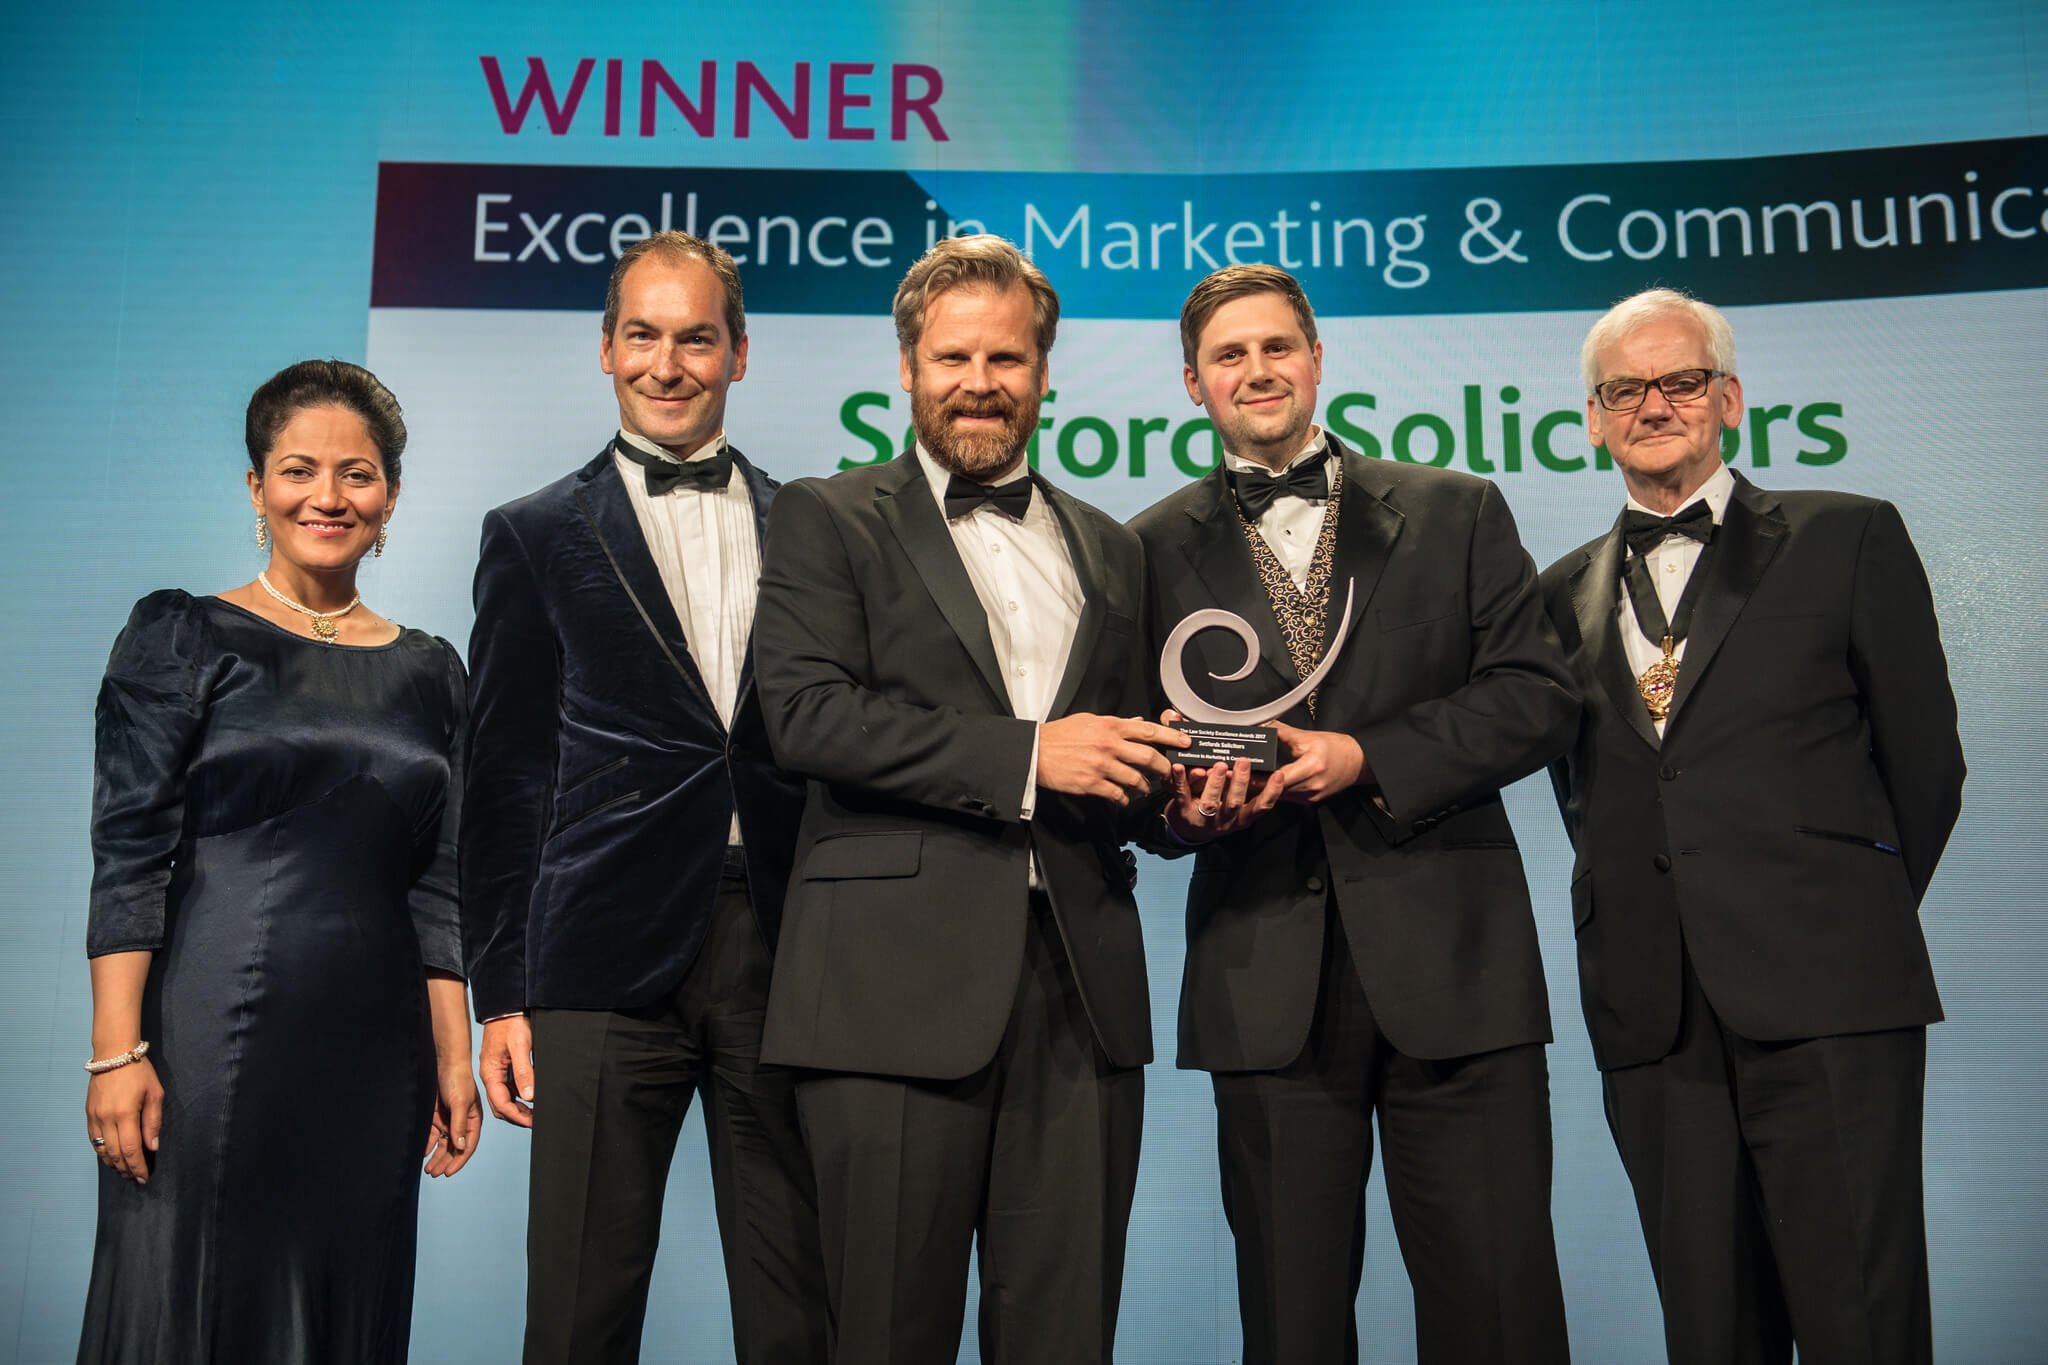 The BBCs Mishal Husain presented the award to the Setfords team, David Rogers, Managing Director, Keir MacKenzie, Head of PR  Communications and Kieran Smith, Head of Digital Marketing alongside Joe Egan, President of the Law Society